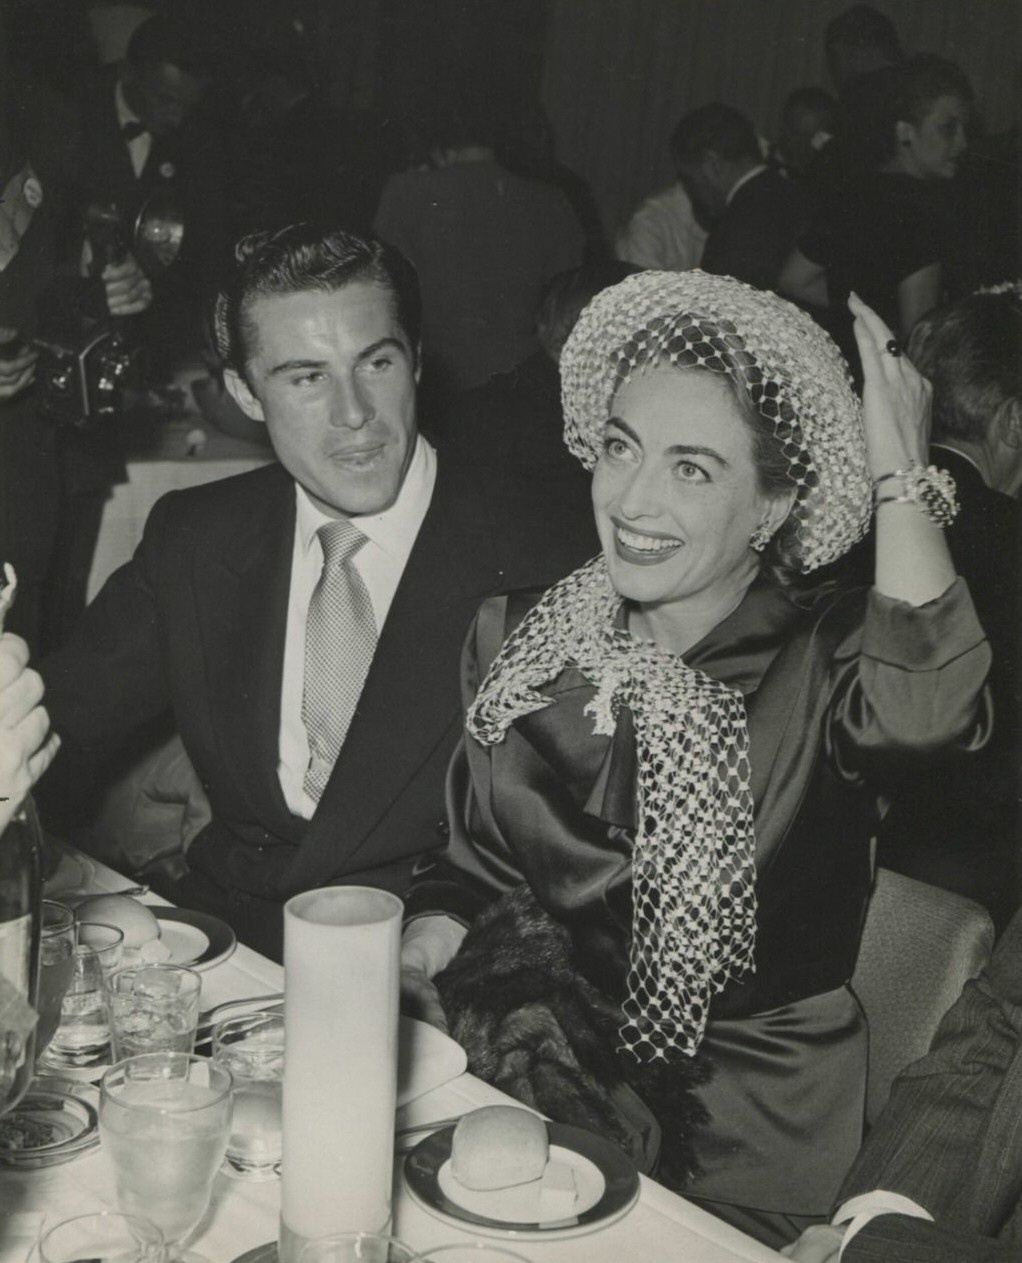 February 1947. At the 'Look' awards party with Peter Shaw.